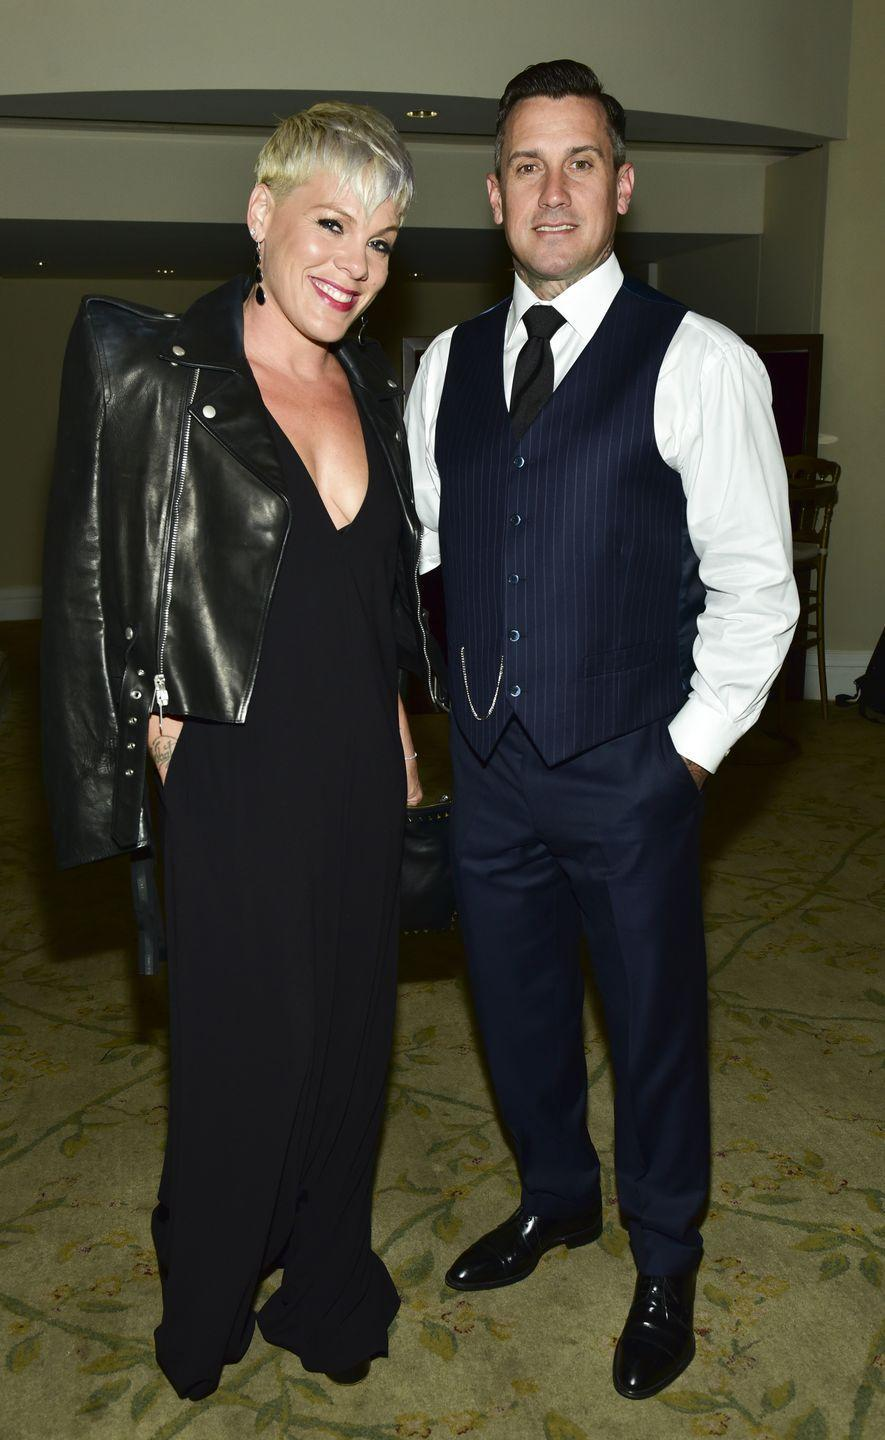 <p>Although Carey strayed back in 2008, Pink ended up sticking by her man, thinking he'd be a great father and husband moving forward. They've been through a few hurdles—break ups, cheating rumors, marriage, and a separation—yet they found their way back, and are now raising their two children together.</p>